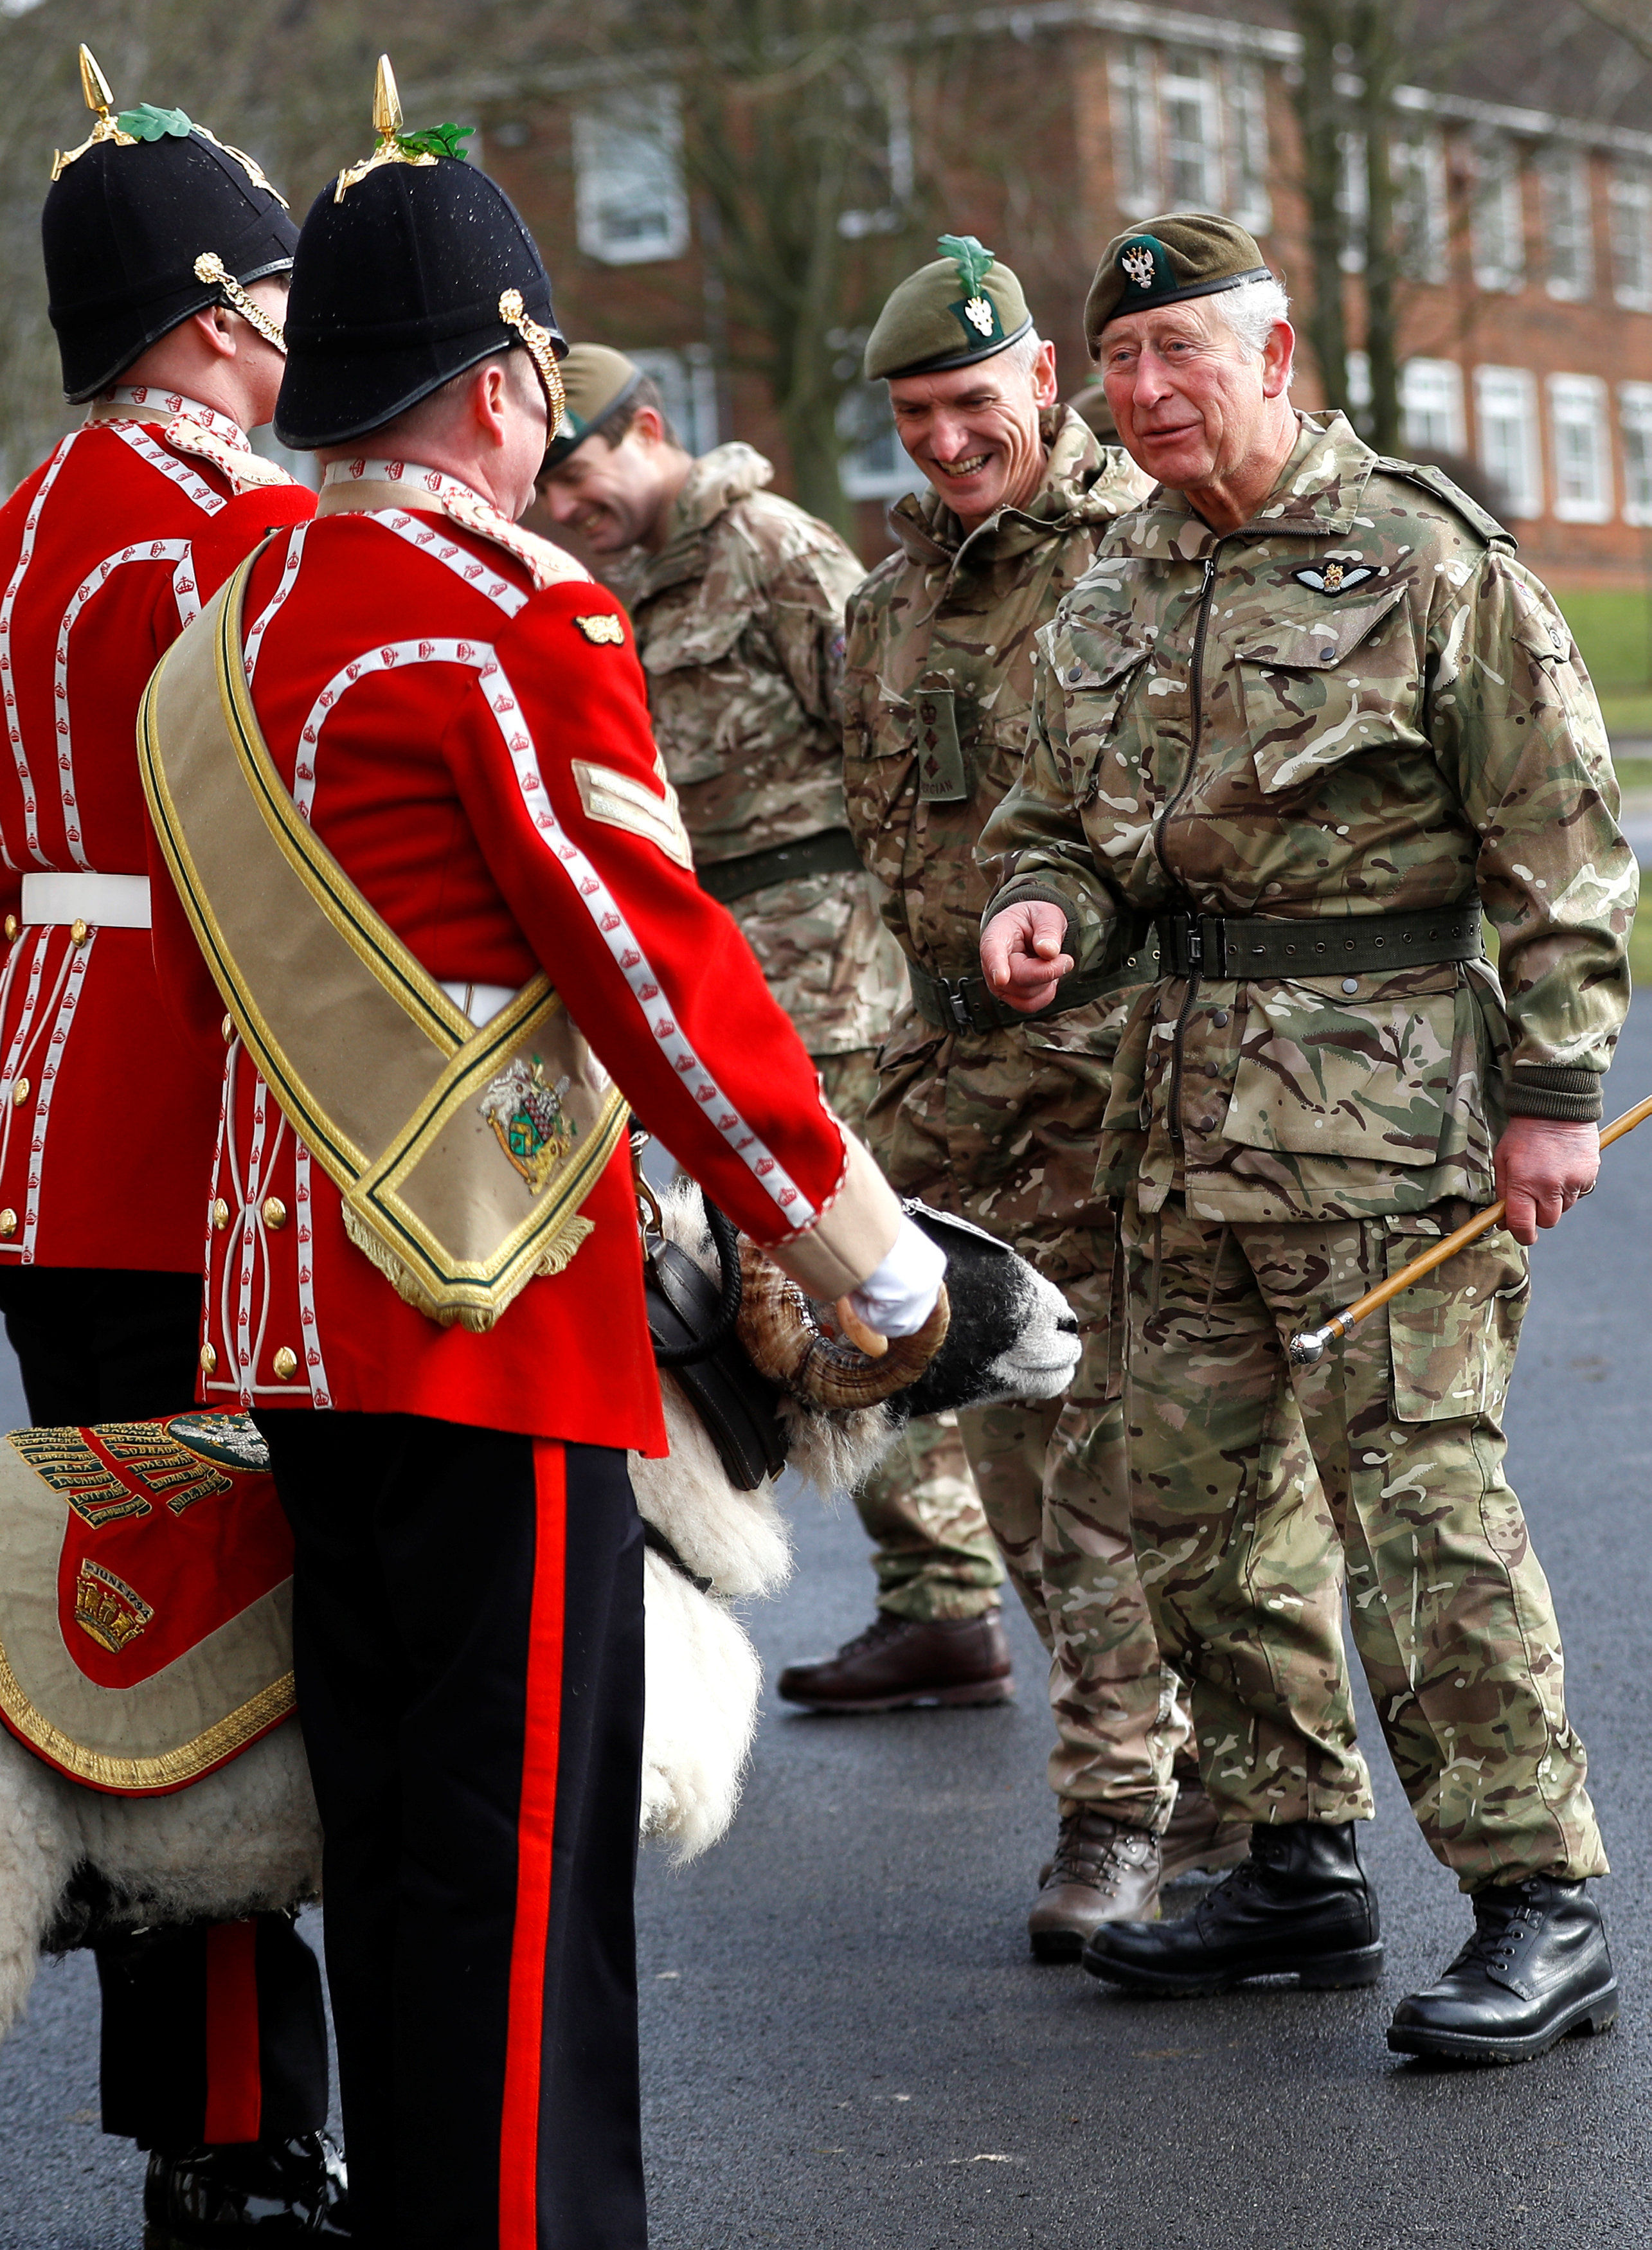 The Prince of Wales meets Private Derby XXII, a Swaledale Ram and the Regimental Mascot during his visit to the 1st Battalion the Mercian Regiment